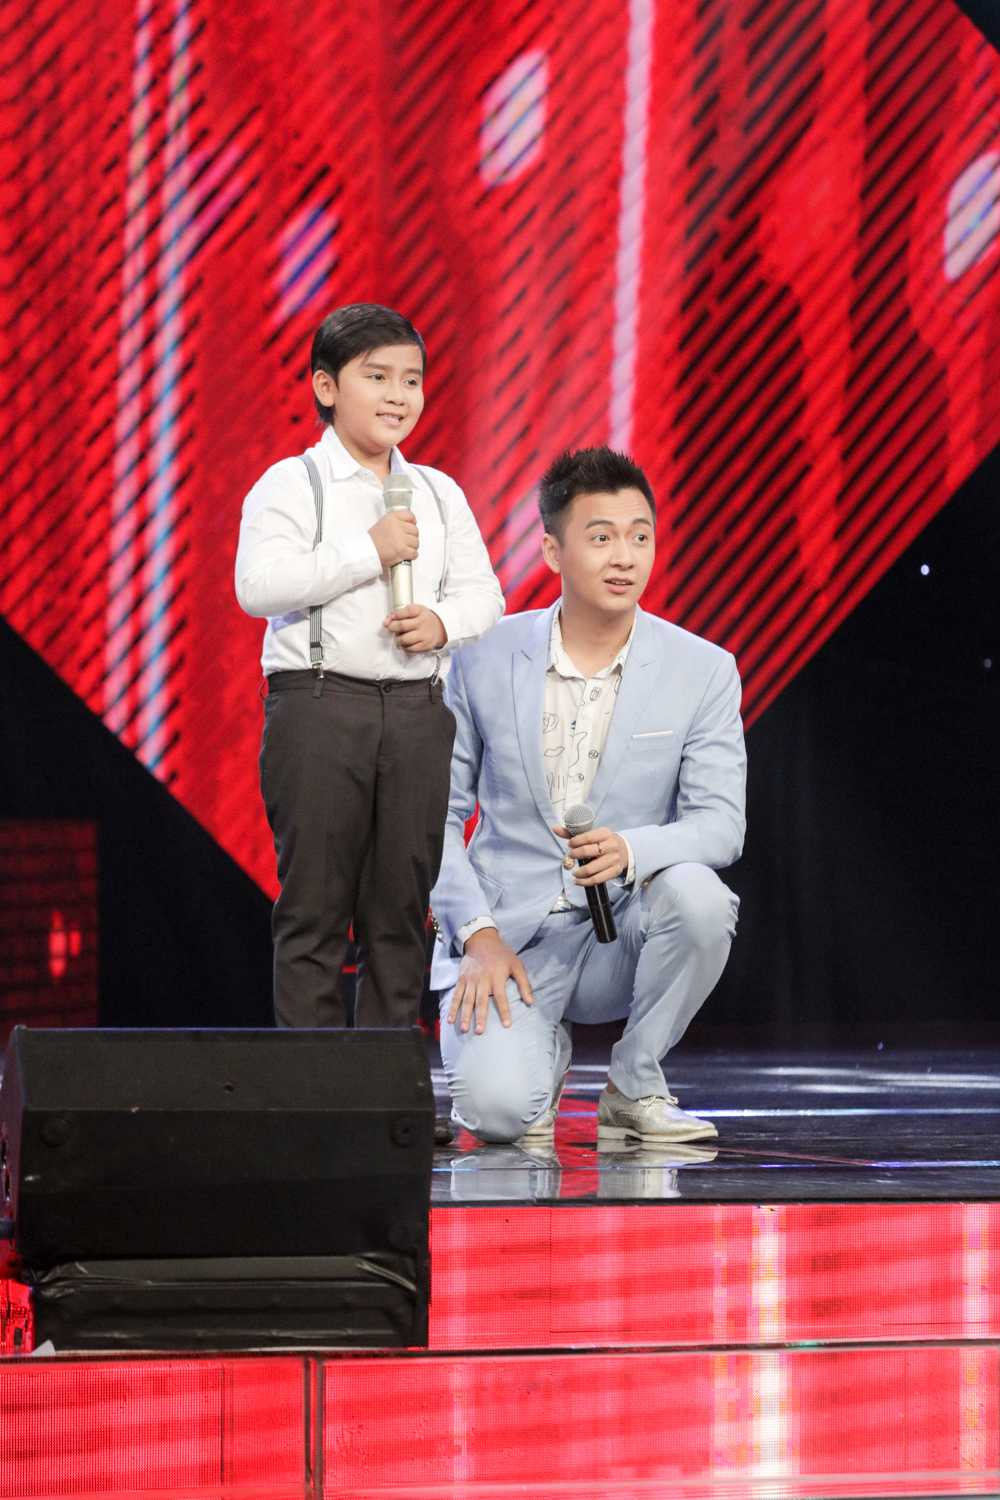 Hoc tro cua Vu Cat Tuong se dang quang The Voice Kids 2016? hinh anh 2